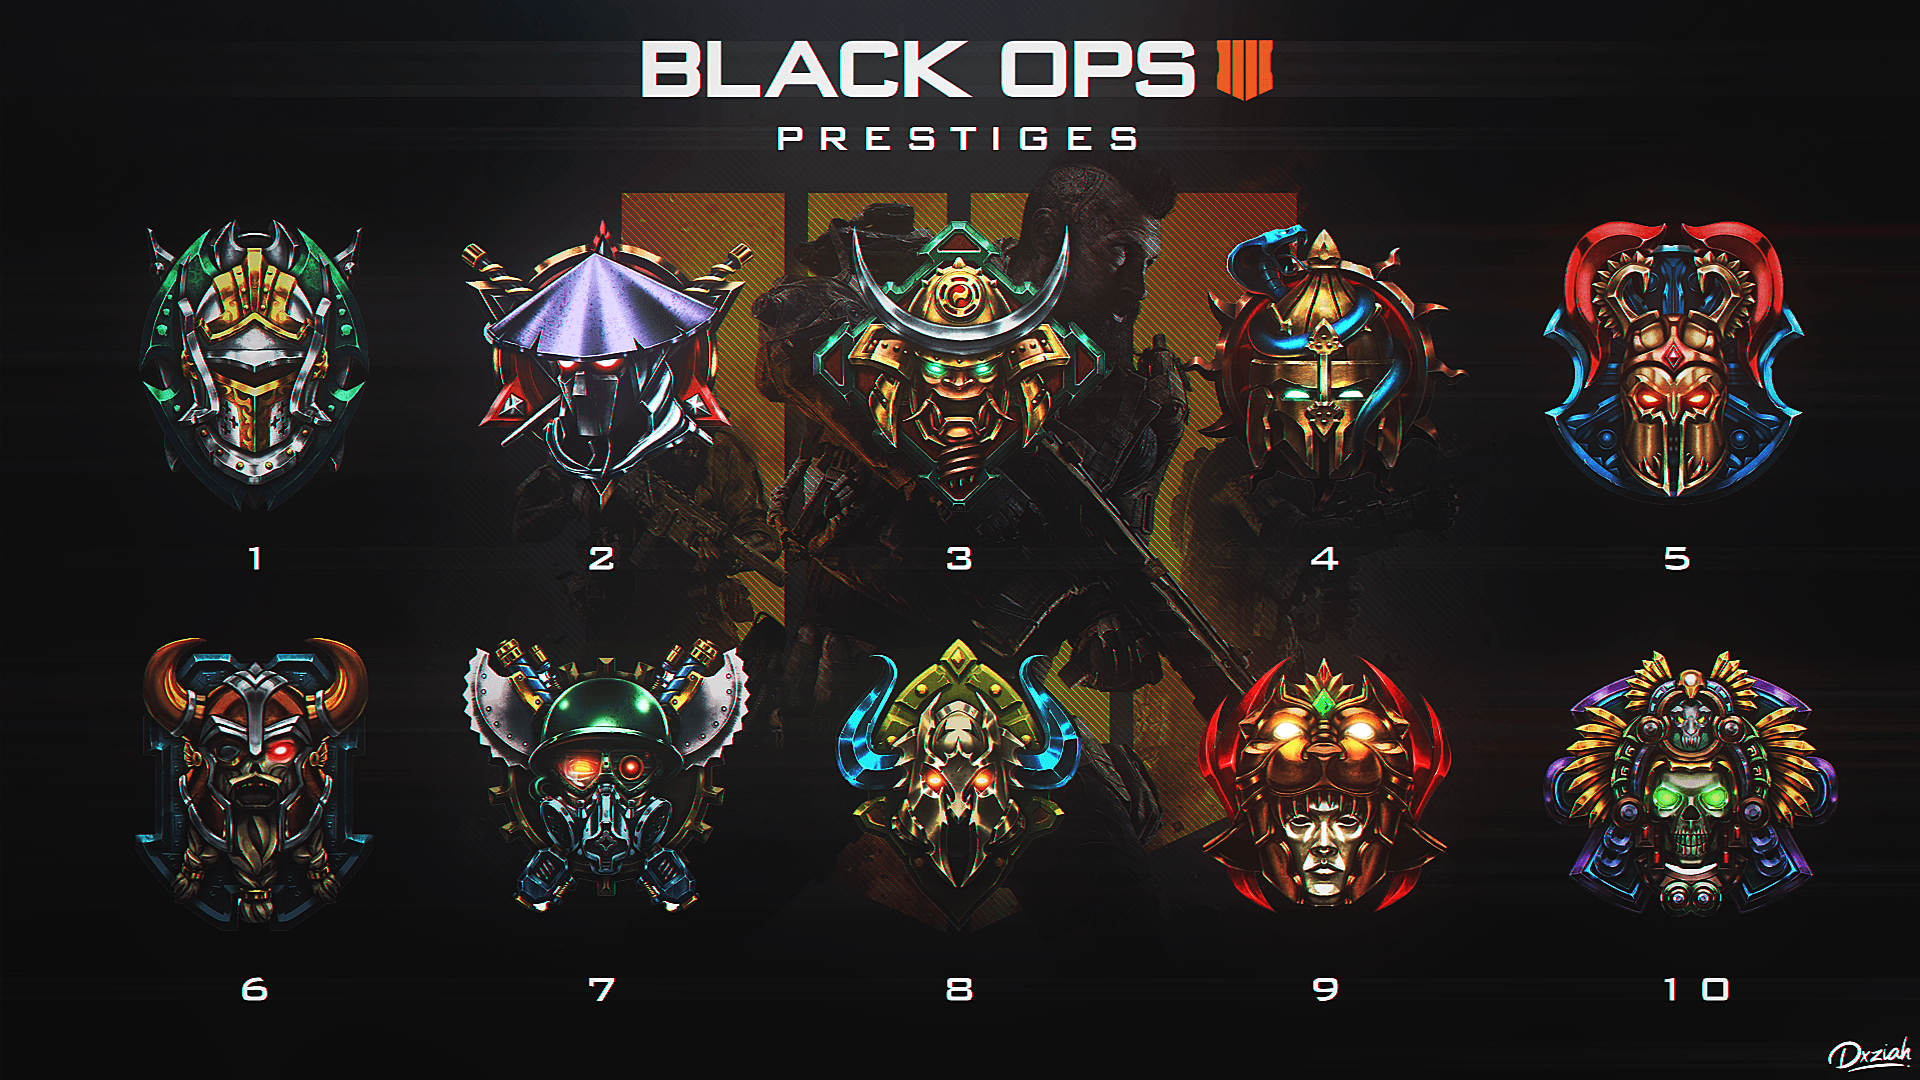 Call of Duty Black Ops 4 Prestige Emblems